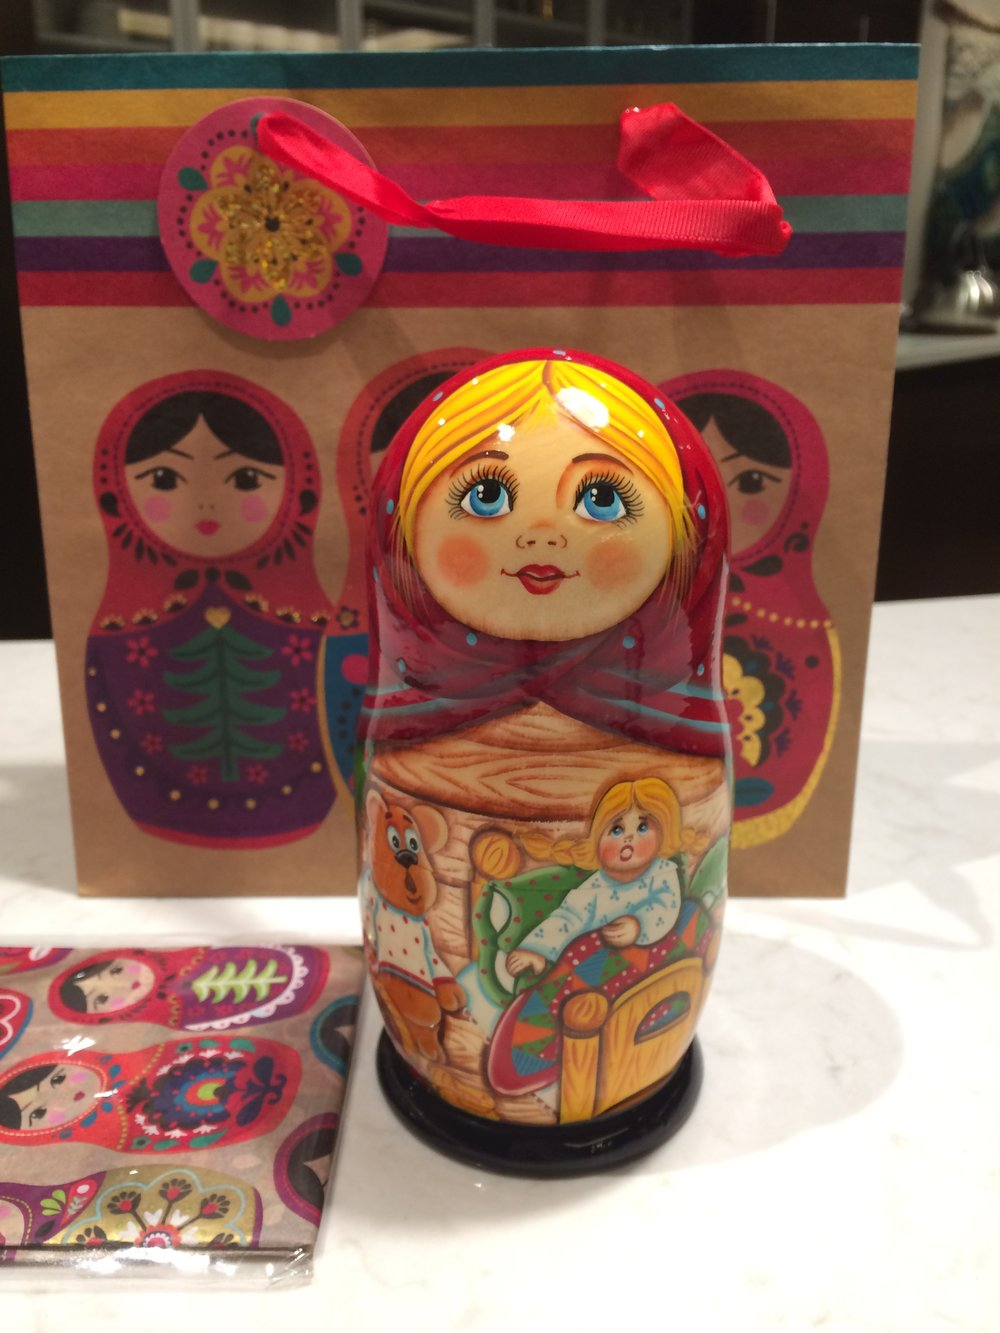 Attention to detail is wrapping a Russian nesting doll in Russian nesting doll wrapping paper.